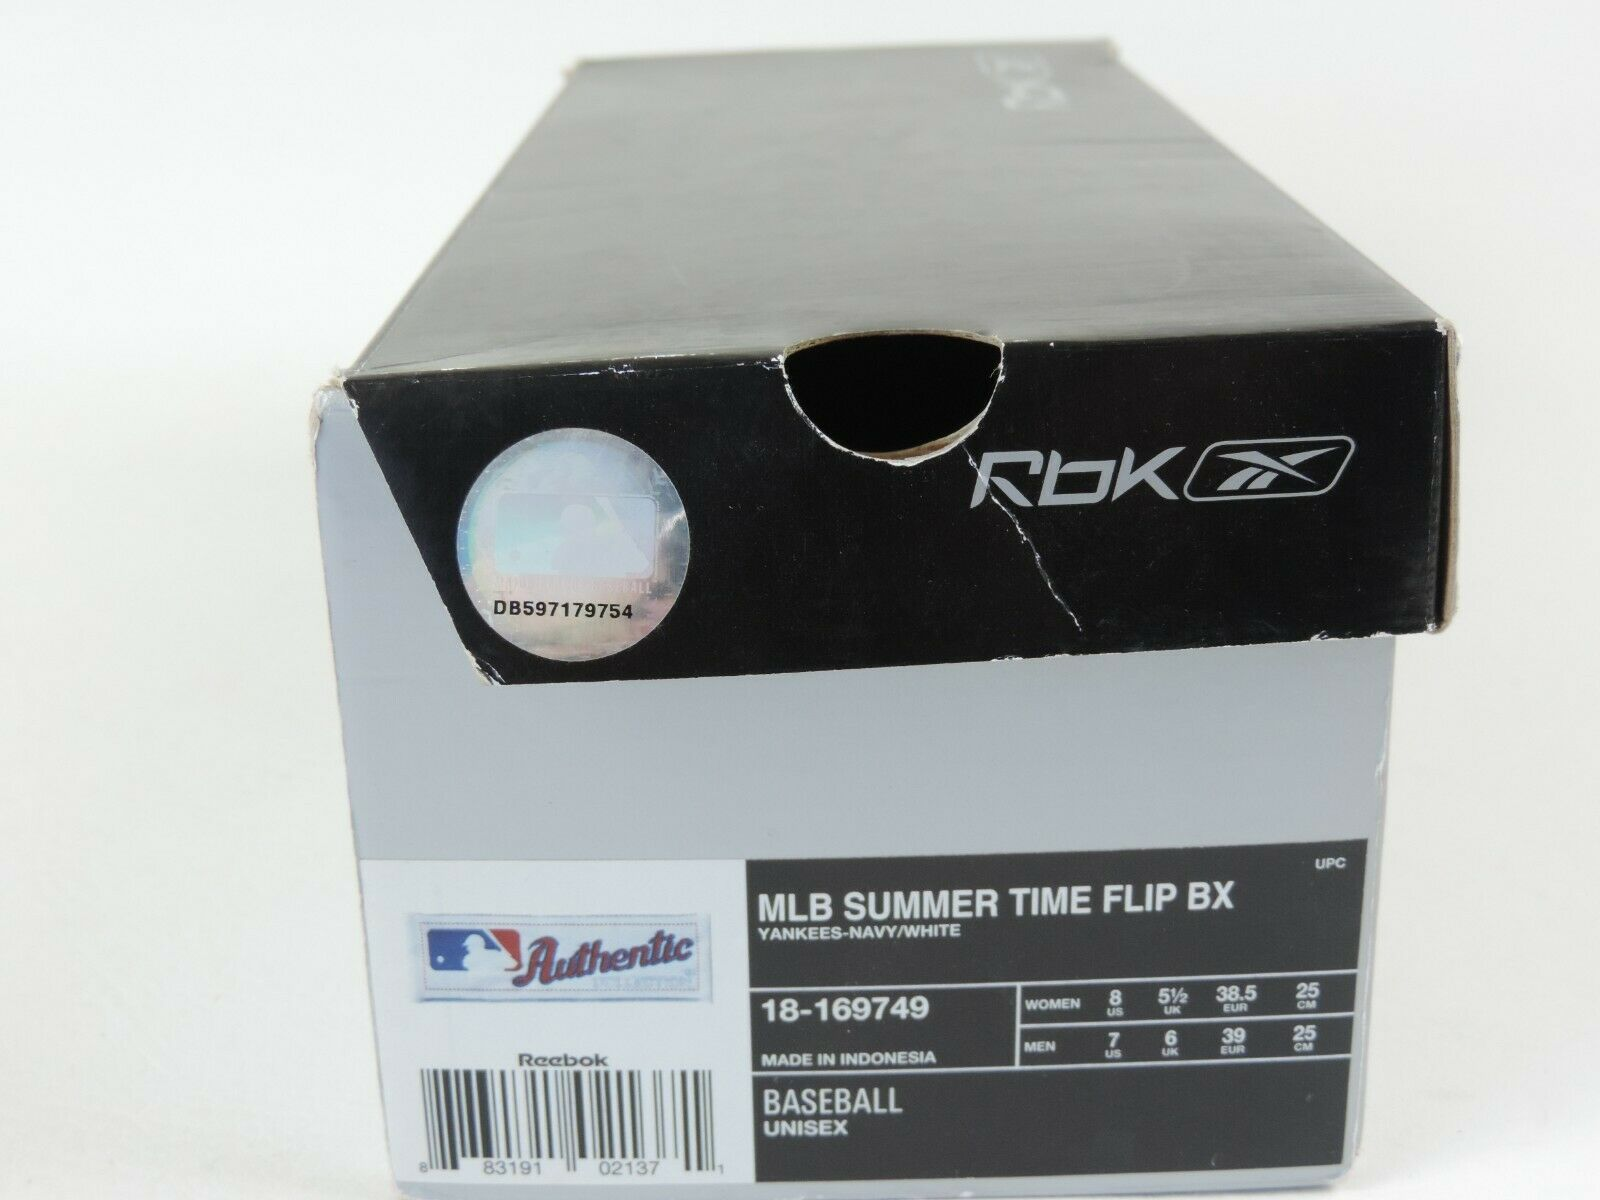 Reebok MLB Womens Sandals Summer Time Flip BX Team Blue 18-169749 Vintage Thong